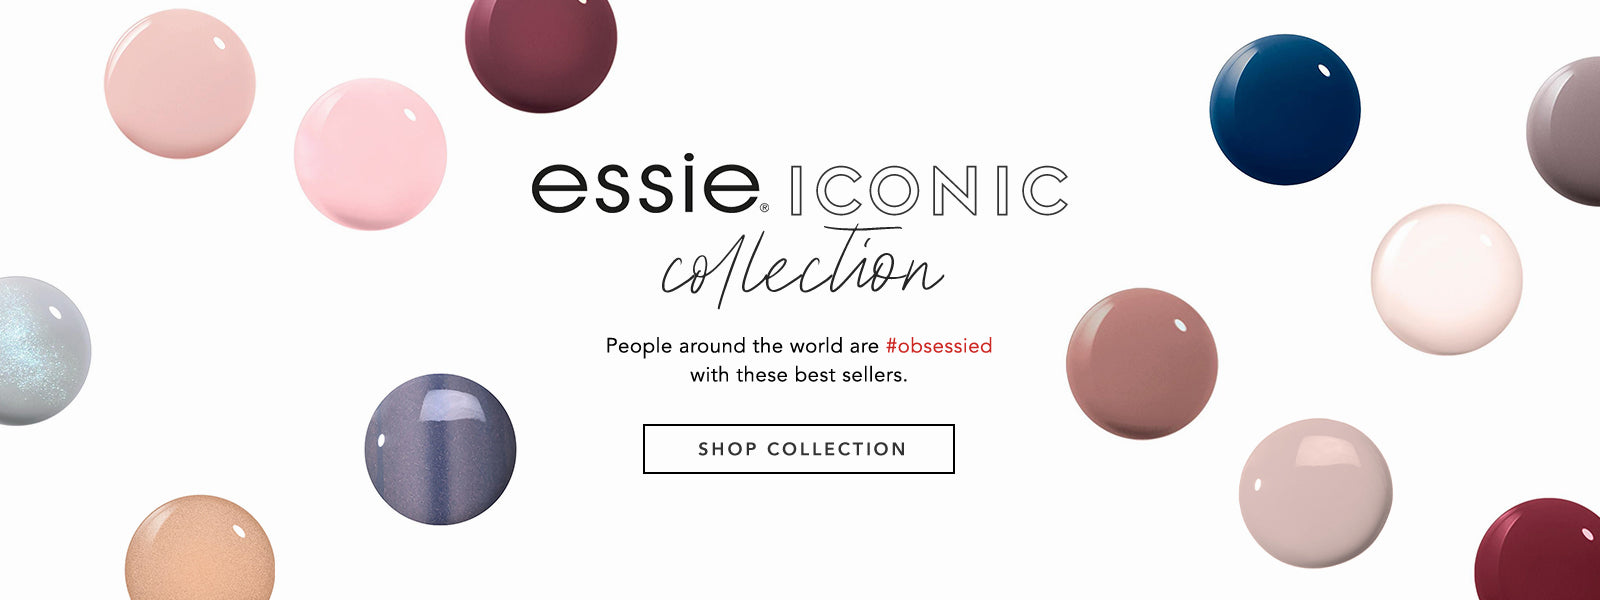 Best Essie Nail Polish Colors